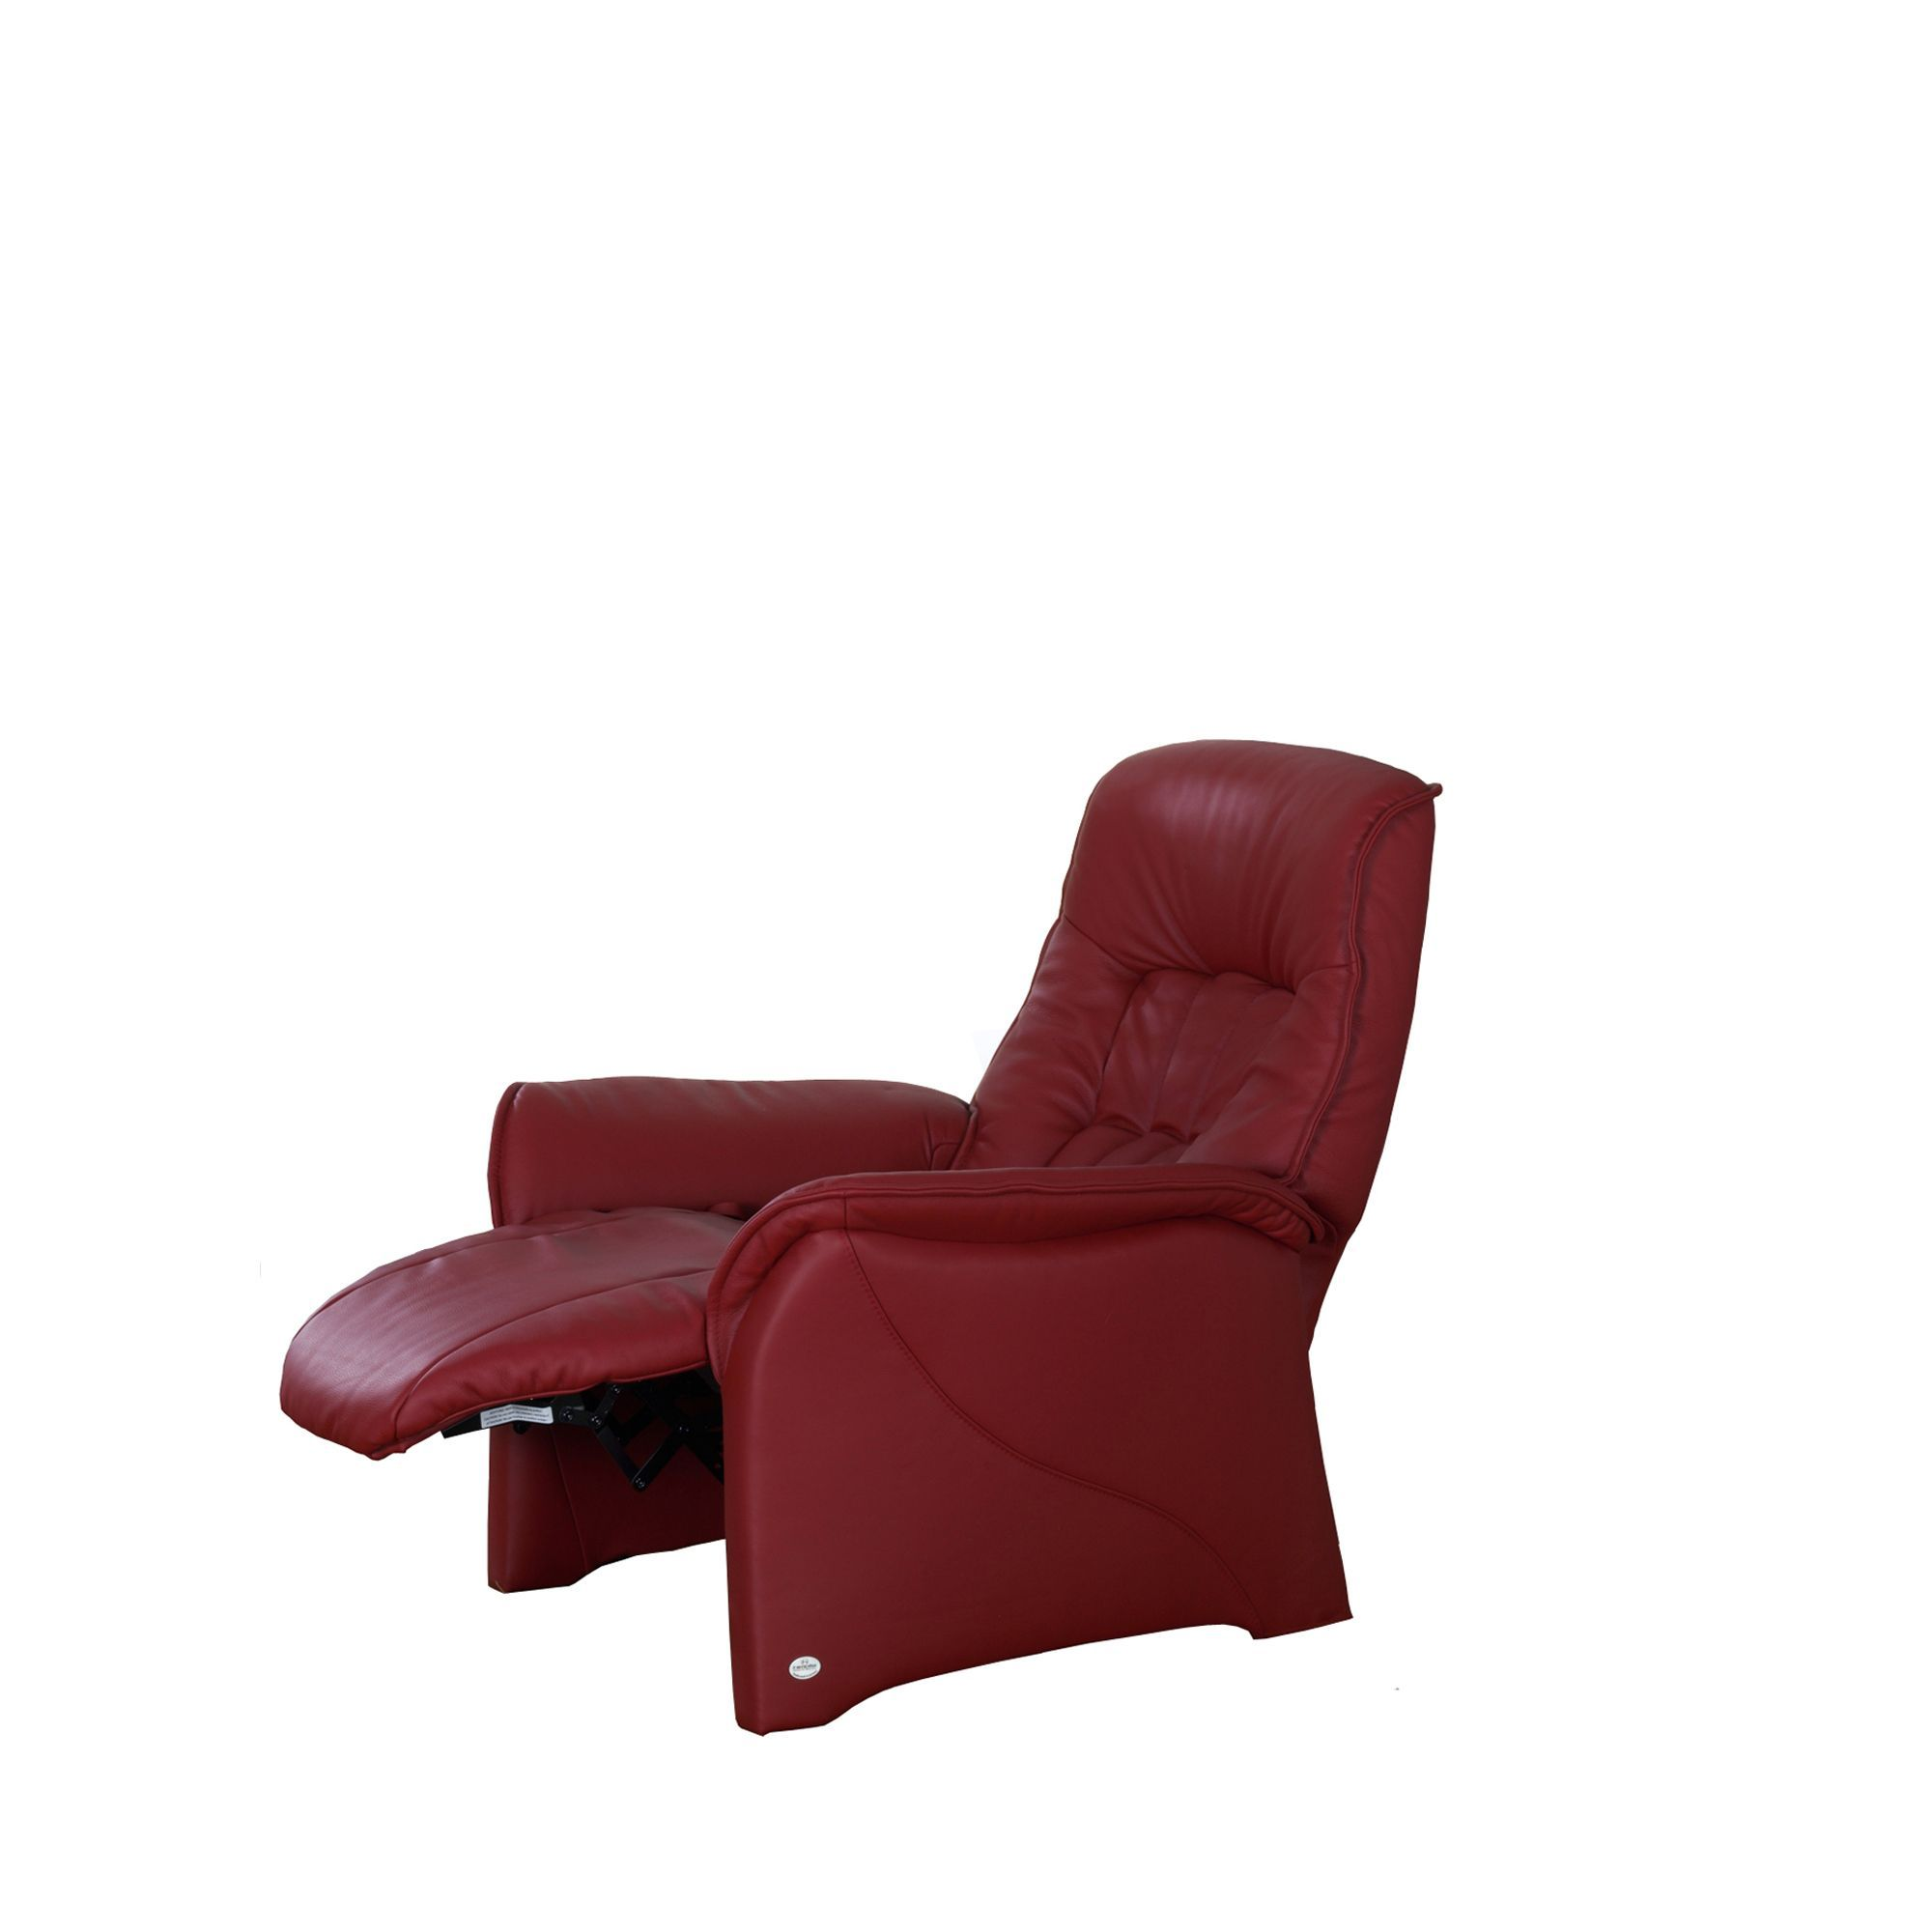 Himolla Rhine Manual Recliner Armchair Himolla Cookes